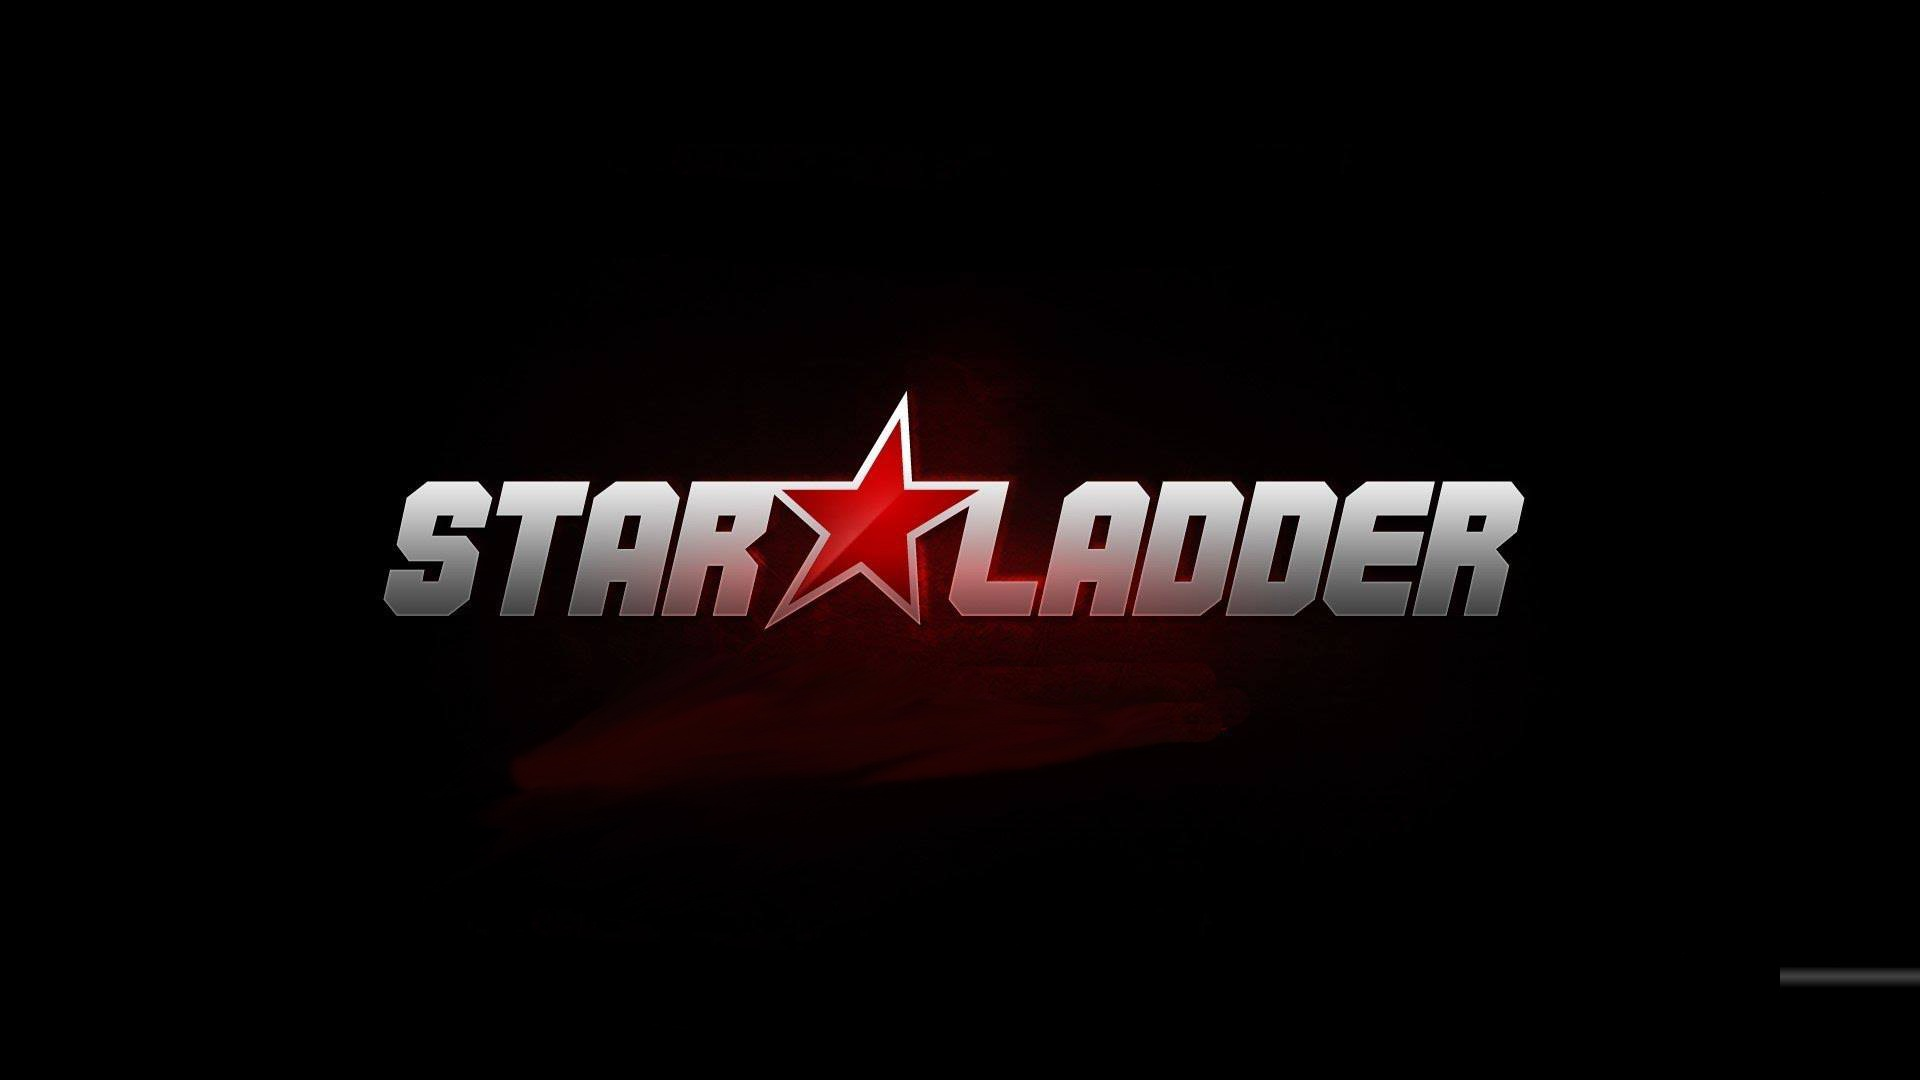 Liquid and Newbee invited to Starladder Invitational